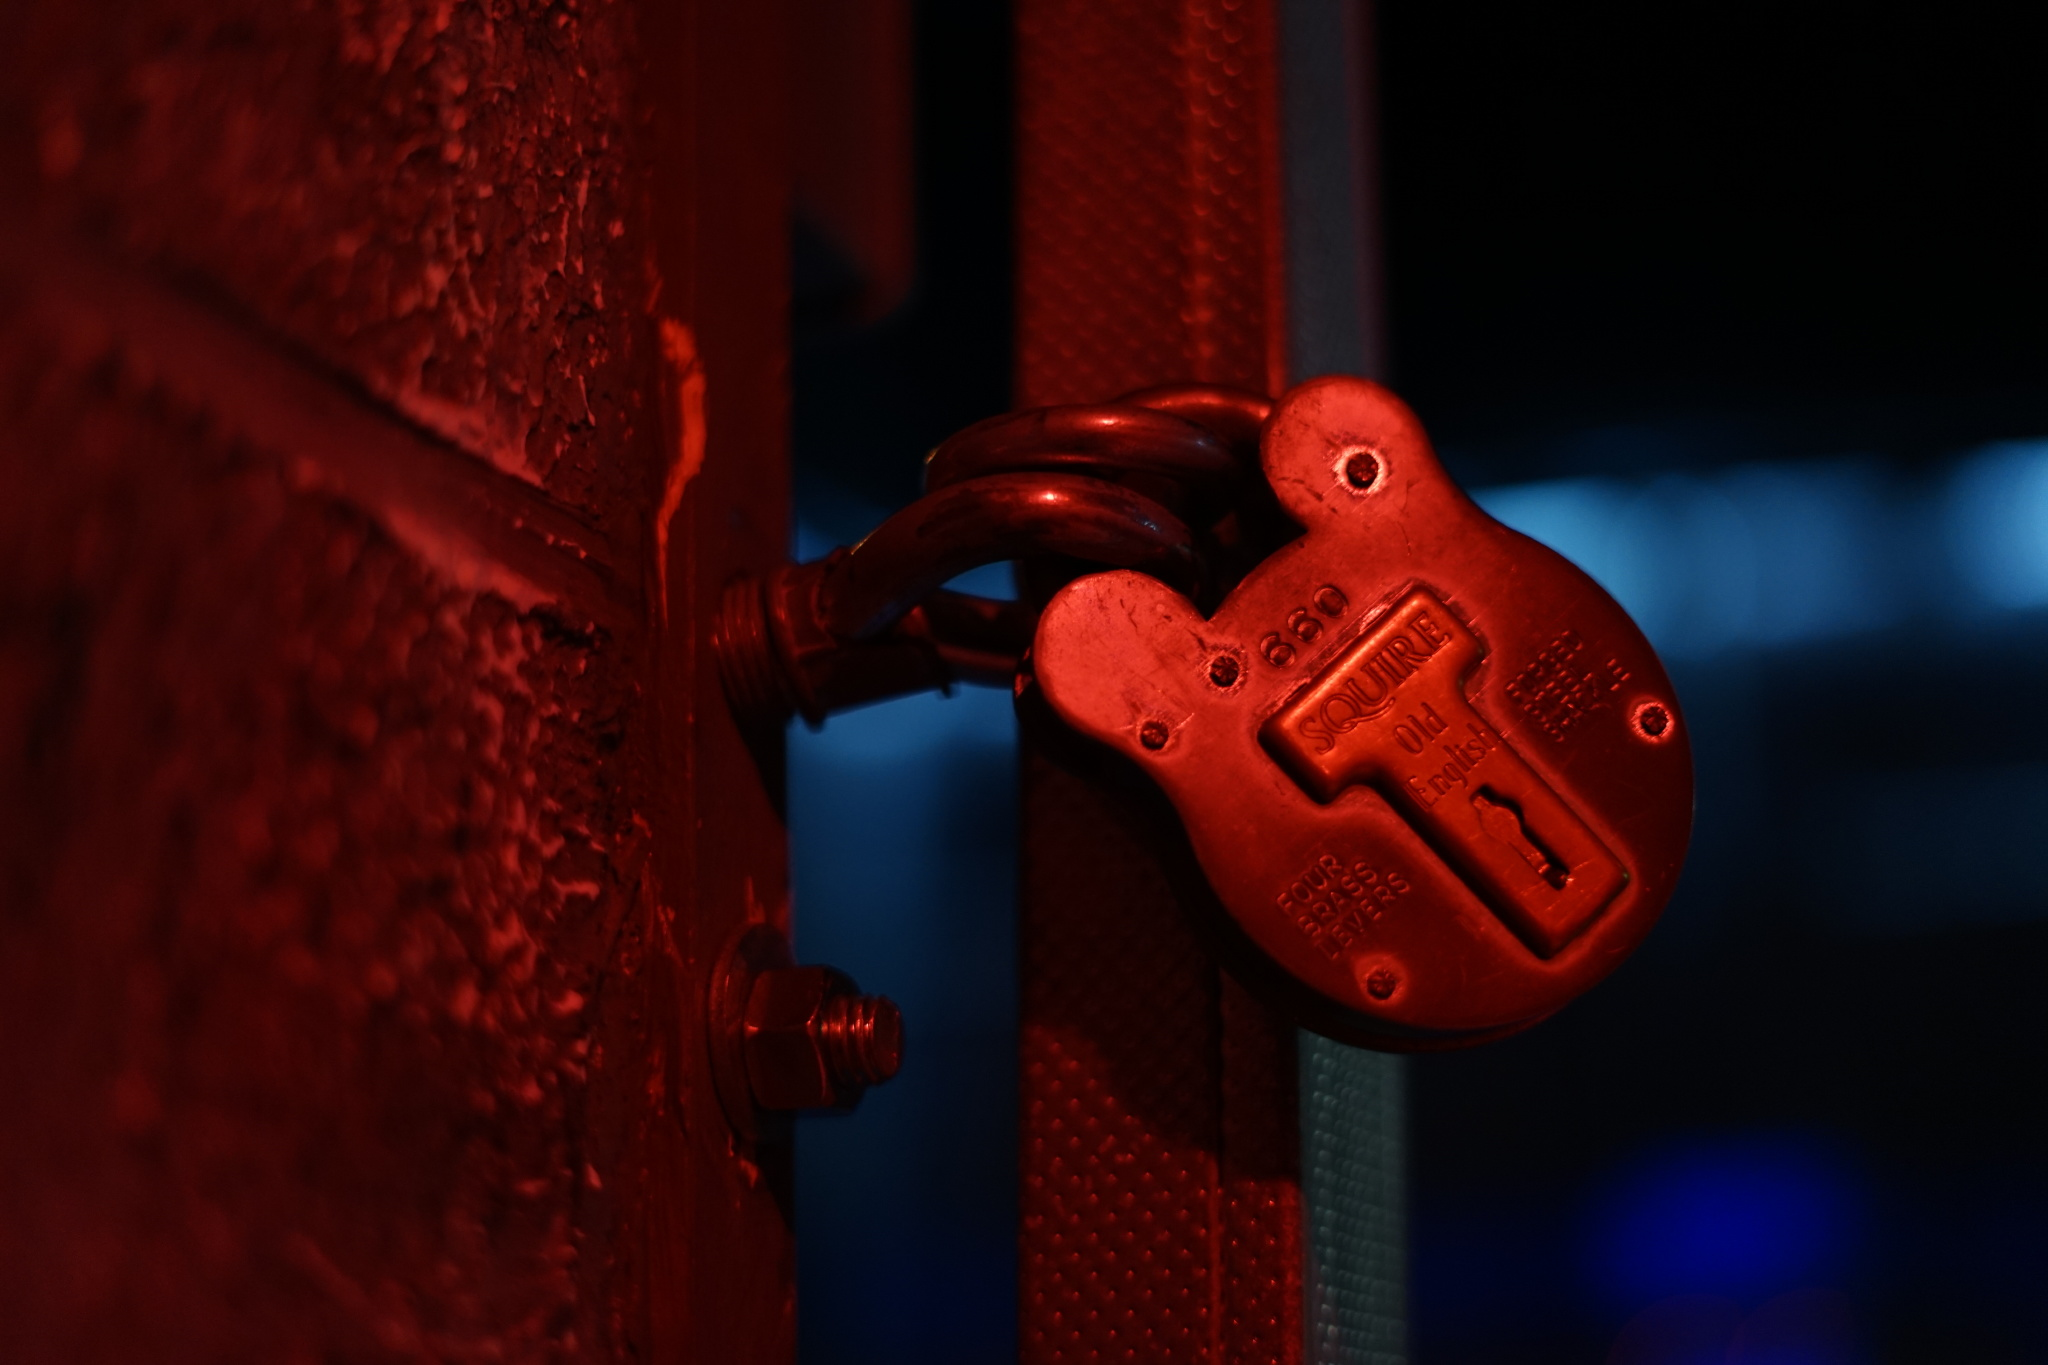 Not Your Standard Escape - Don't come in expecting a single room, pens and paper and IKEA furniture. We're not your standard lock and key escape room - in fact, some of our rooms don't have any locks and keys at all!